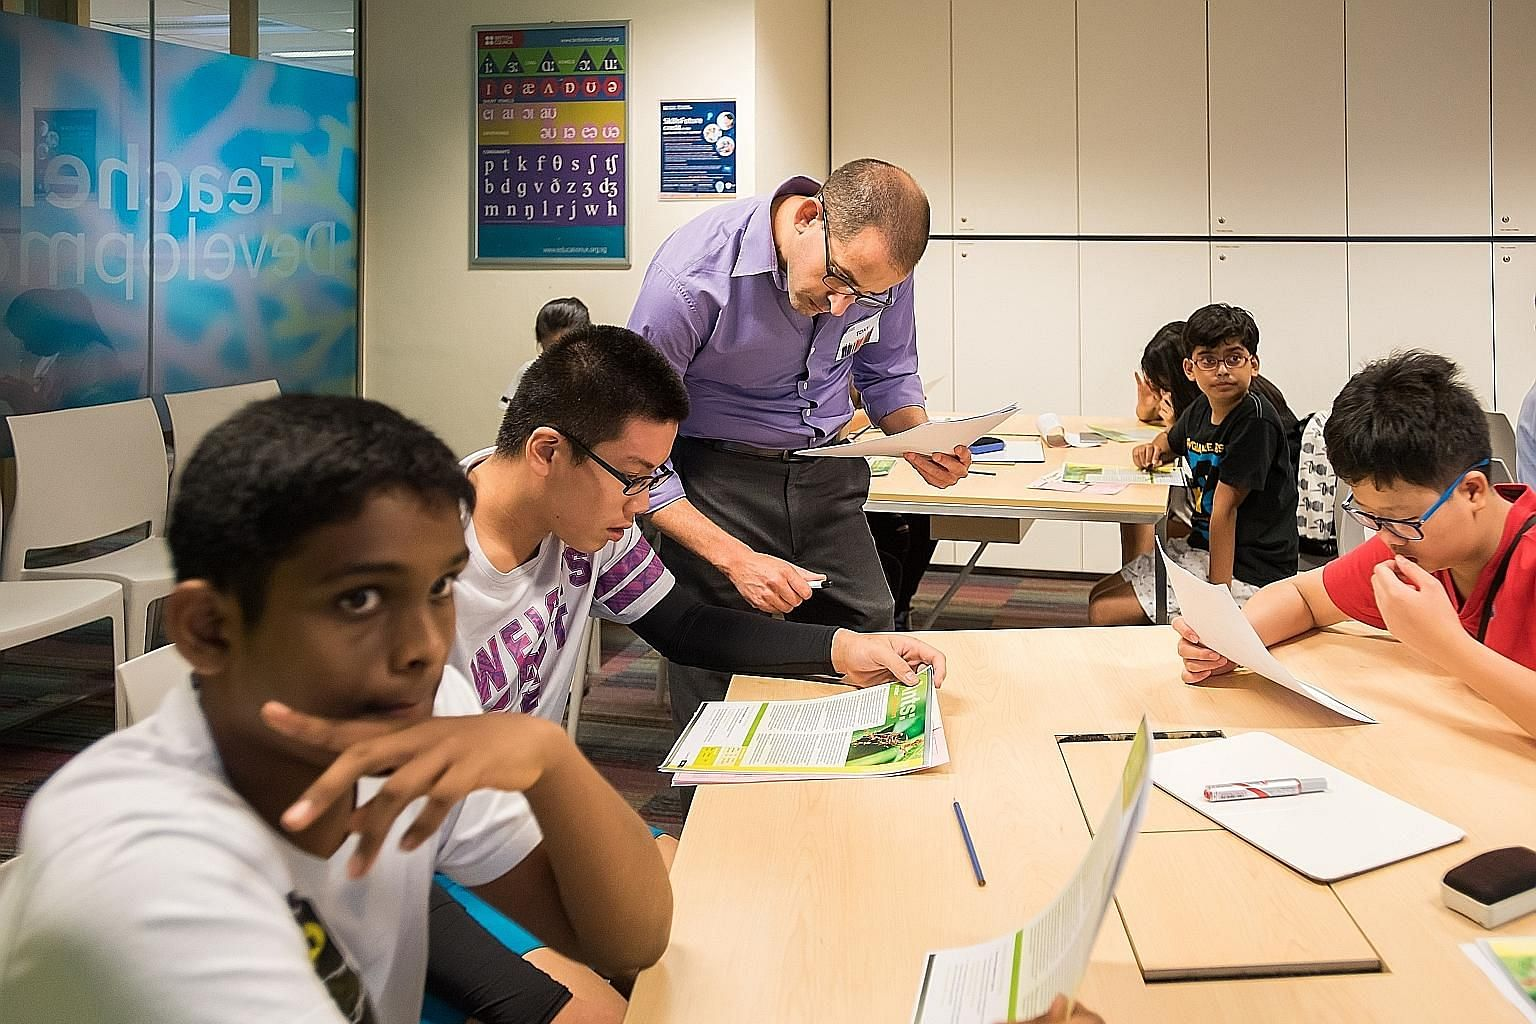 An English enrichment class run by British Council Singapore. The revised curriculum helps students in Sec 1 to 3 hone their comprehension and composition skills. Those in Sec 4 focus on 0-level preparations.